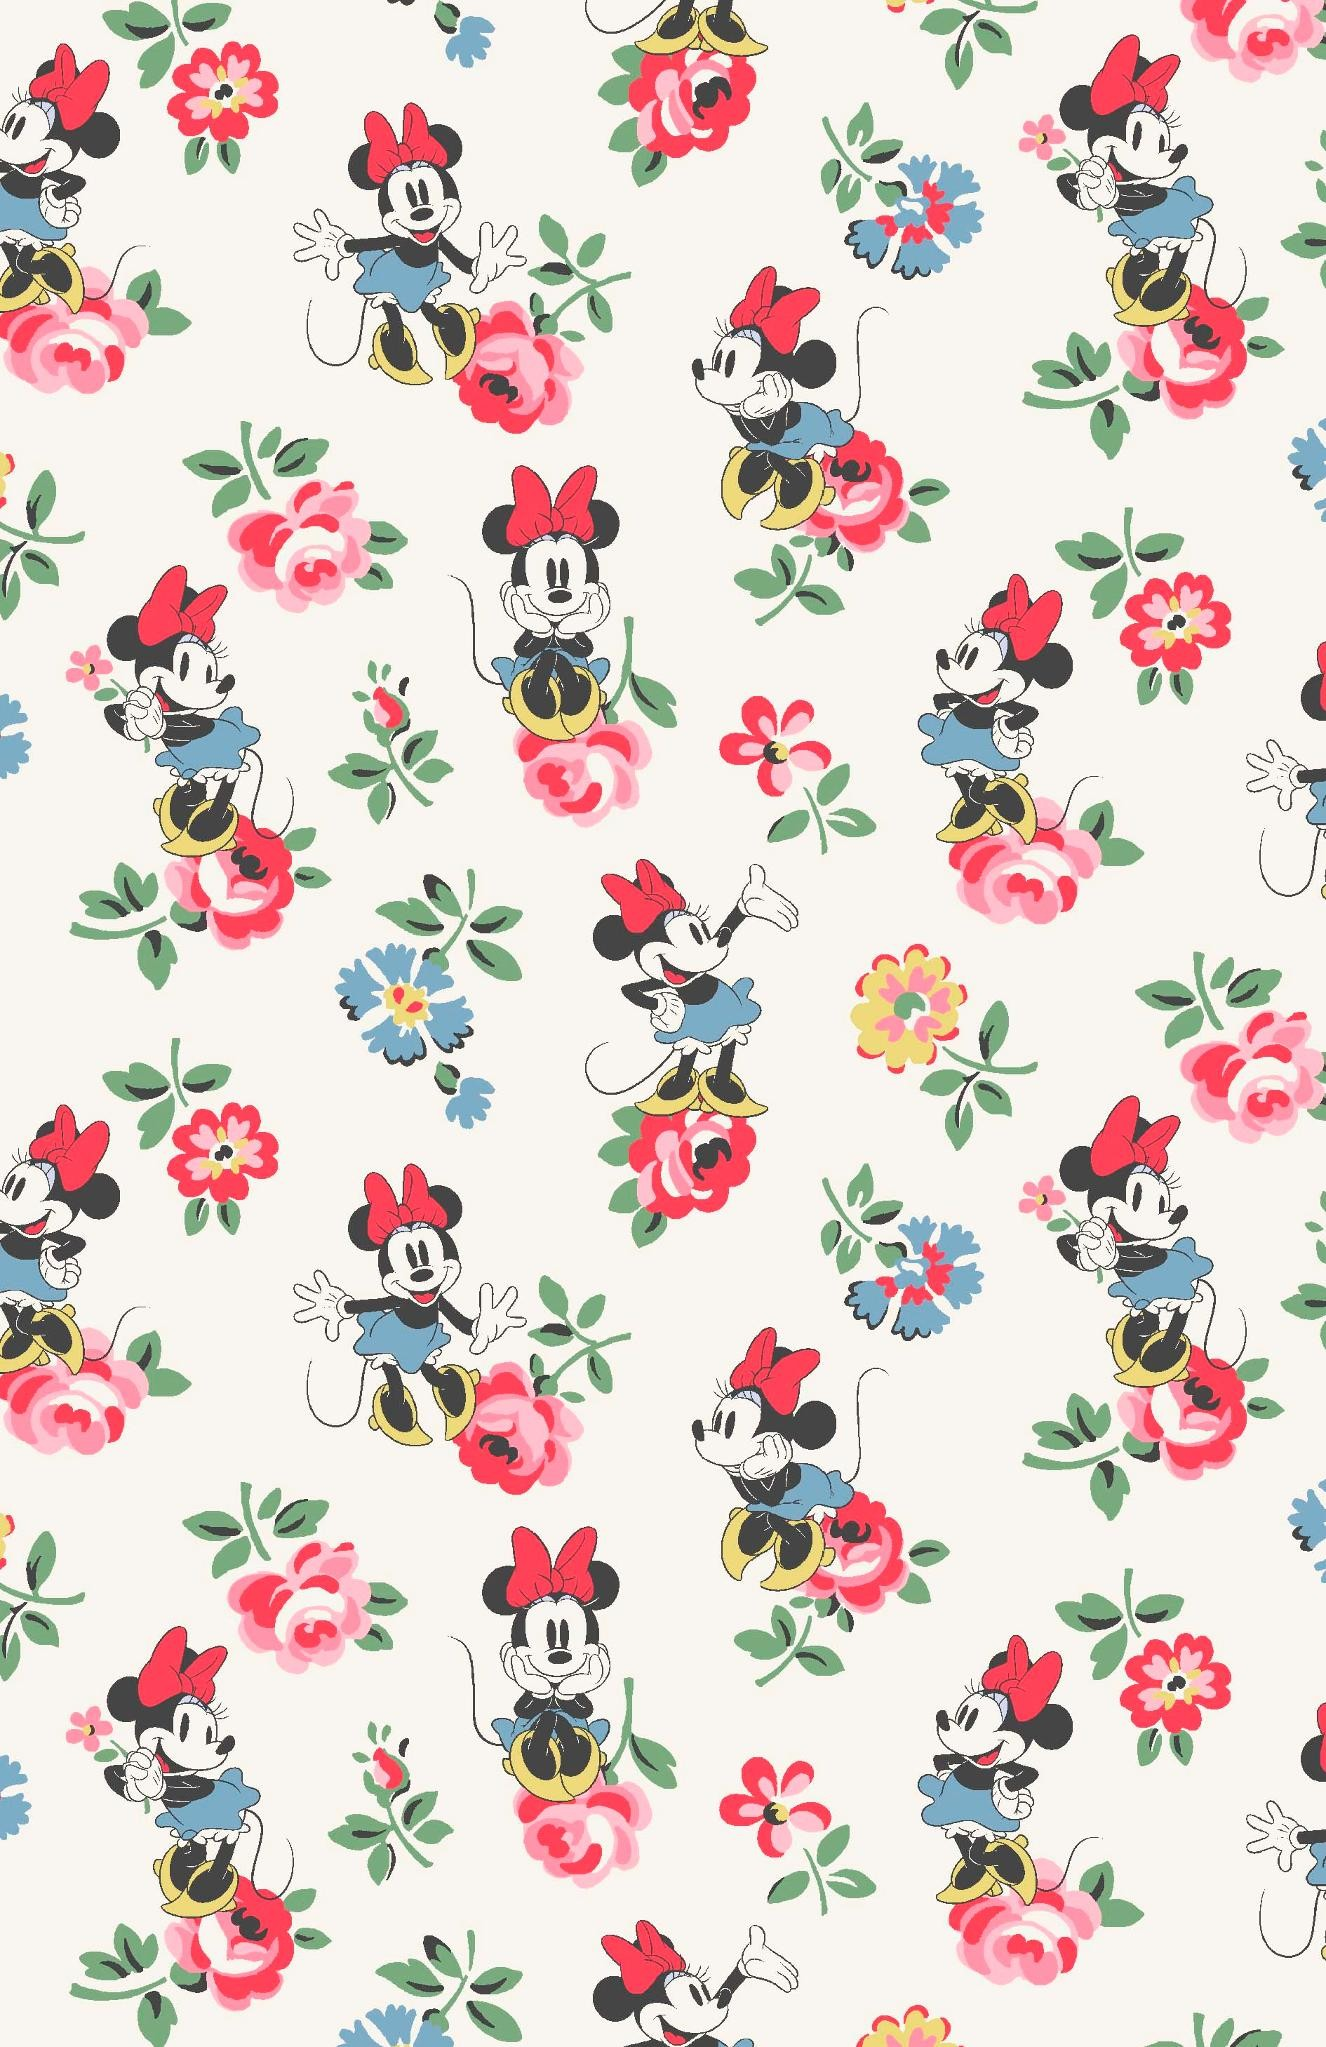 Minnie mouse background download free amazing backgrounds for desktop and mobile devices in - Minnie mouse wallpaper pinterest ...